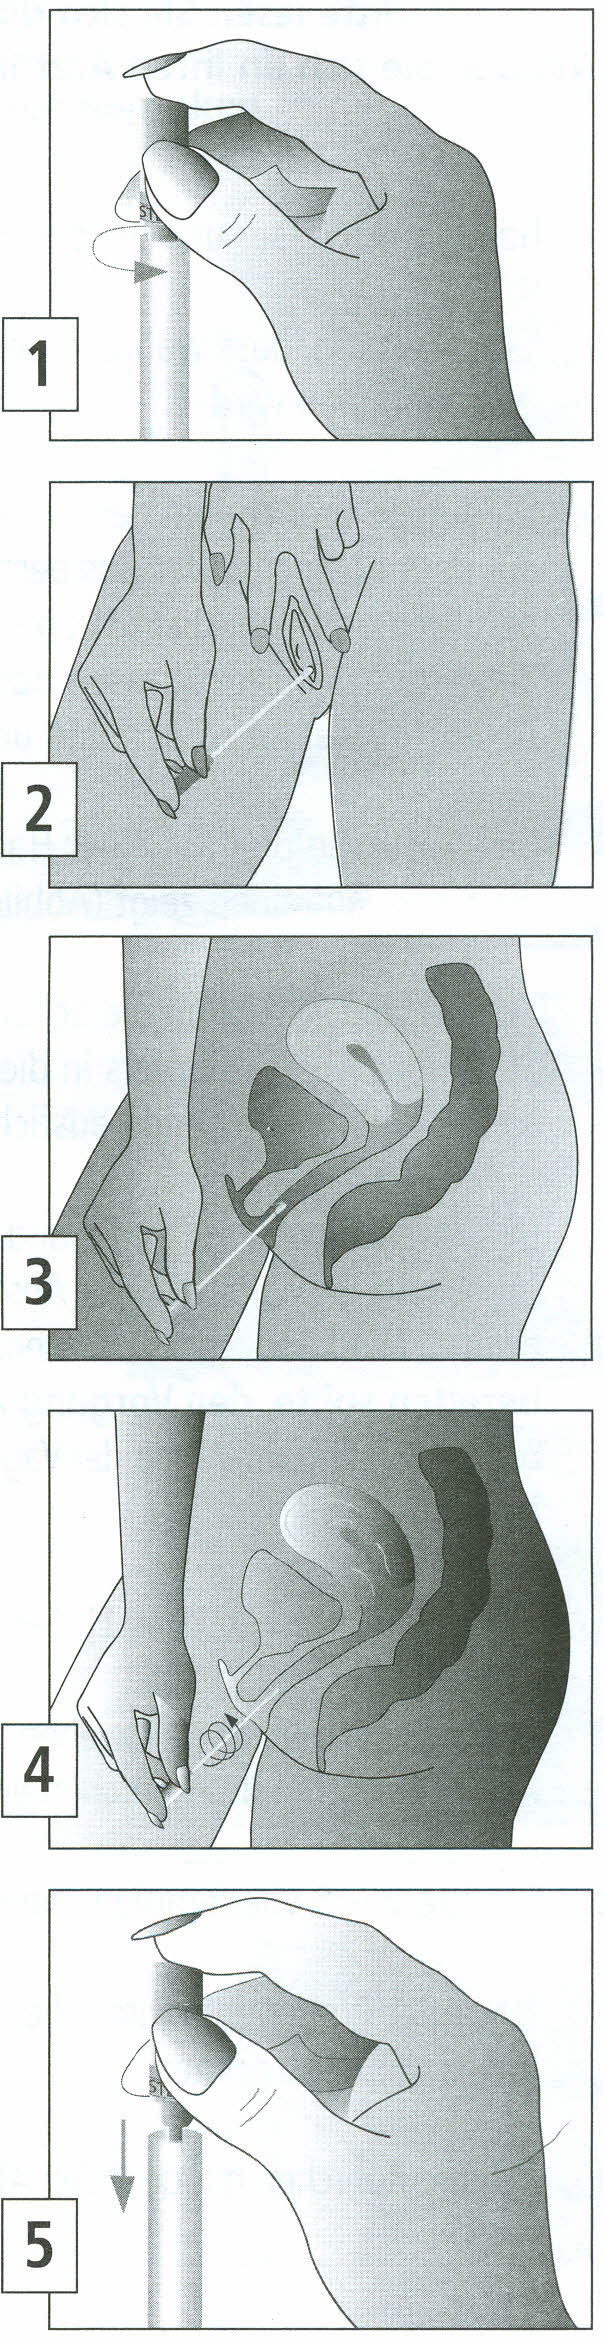 Instructions for self-collection of vaginal swabs